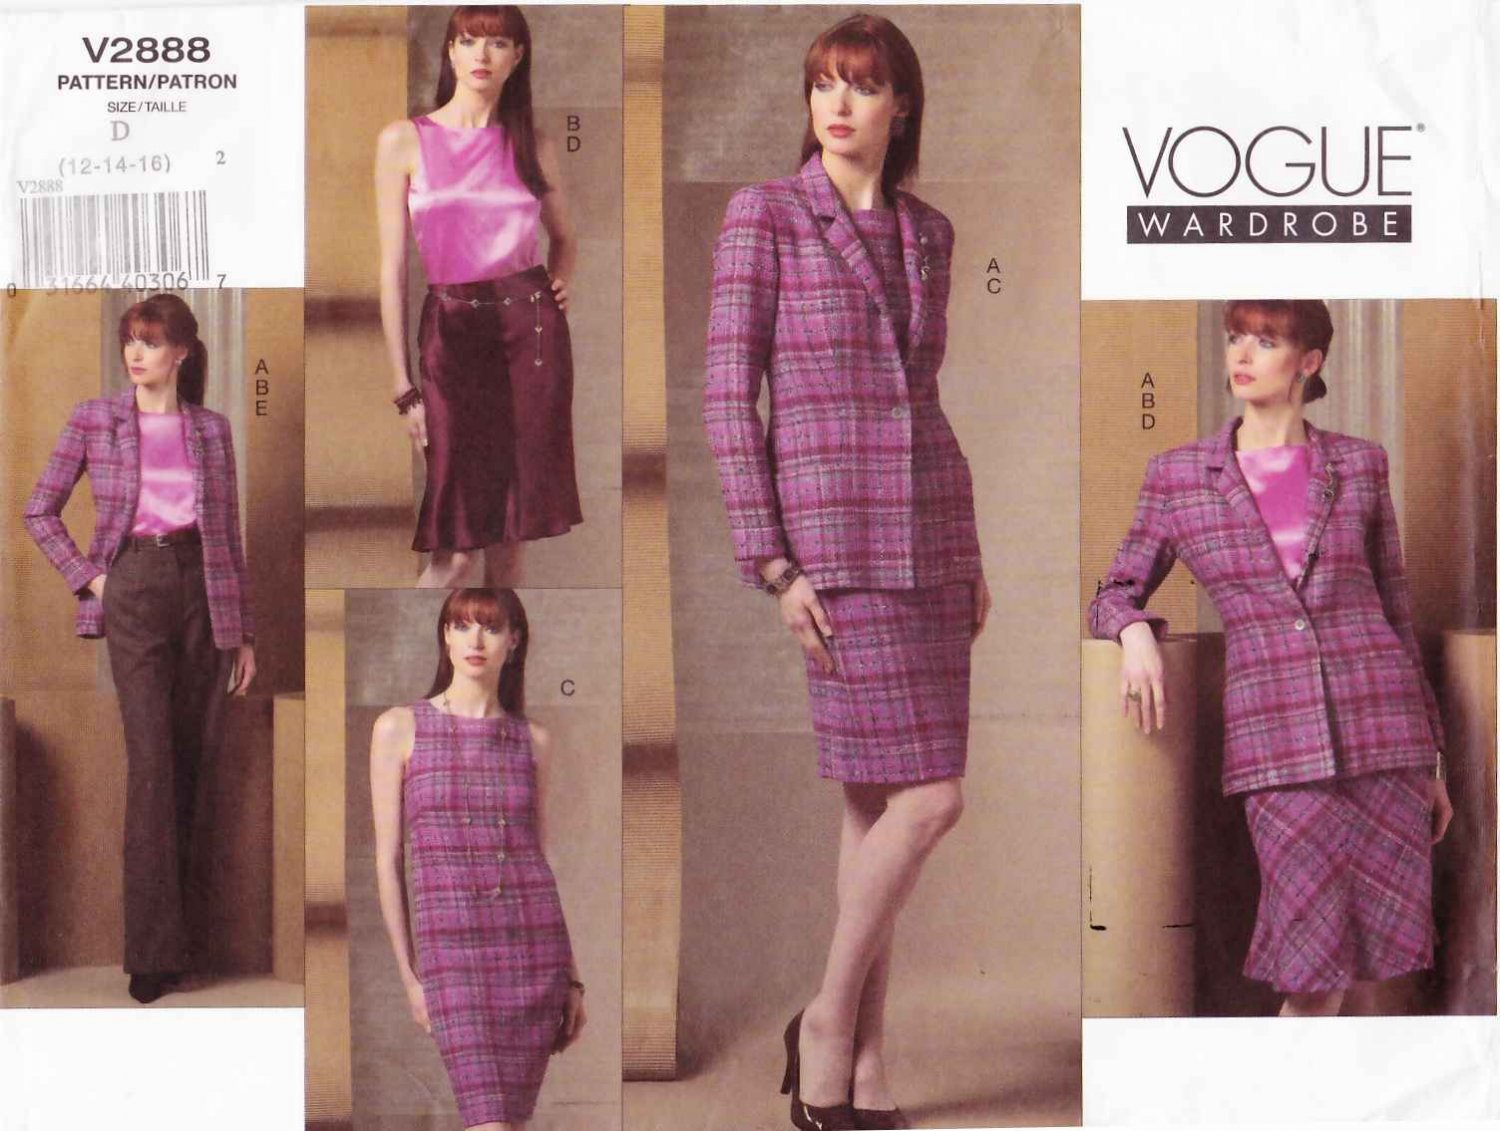 Vogue Sewing Pattern 2888 Misses Size 18-20-22 Easy Wardrobe Skirt Dress Jacket Pants Top